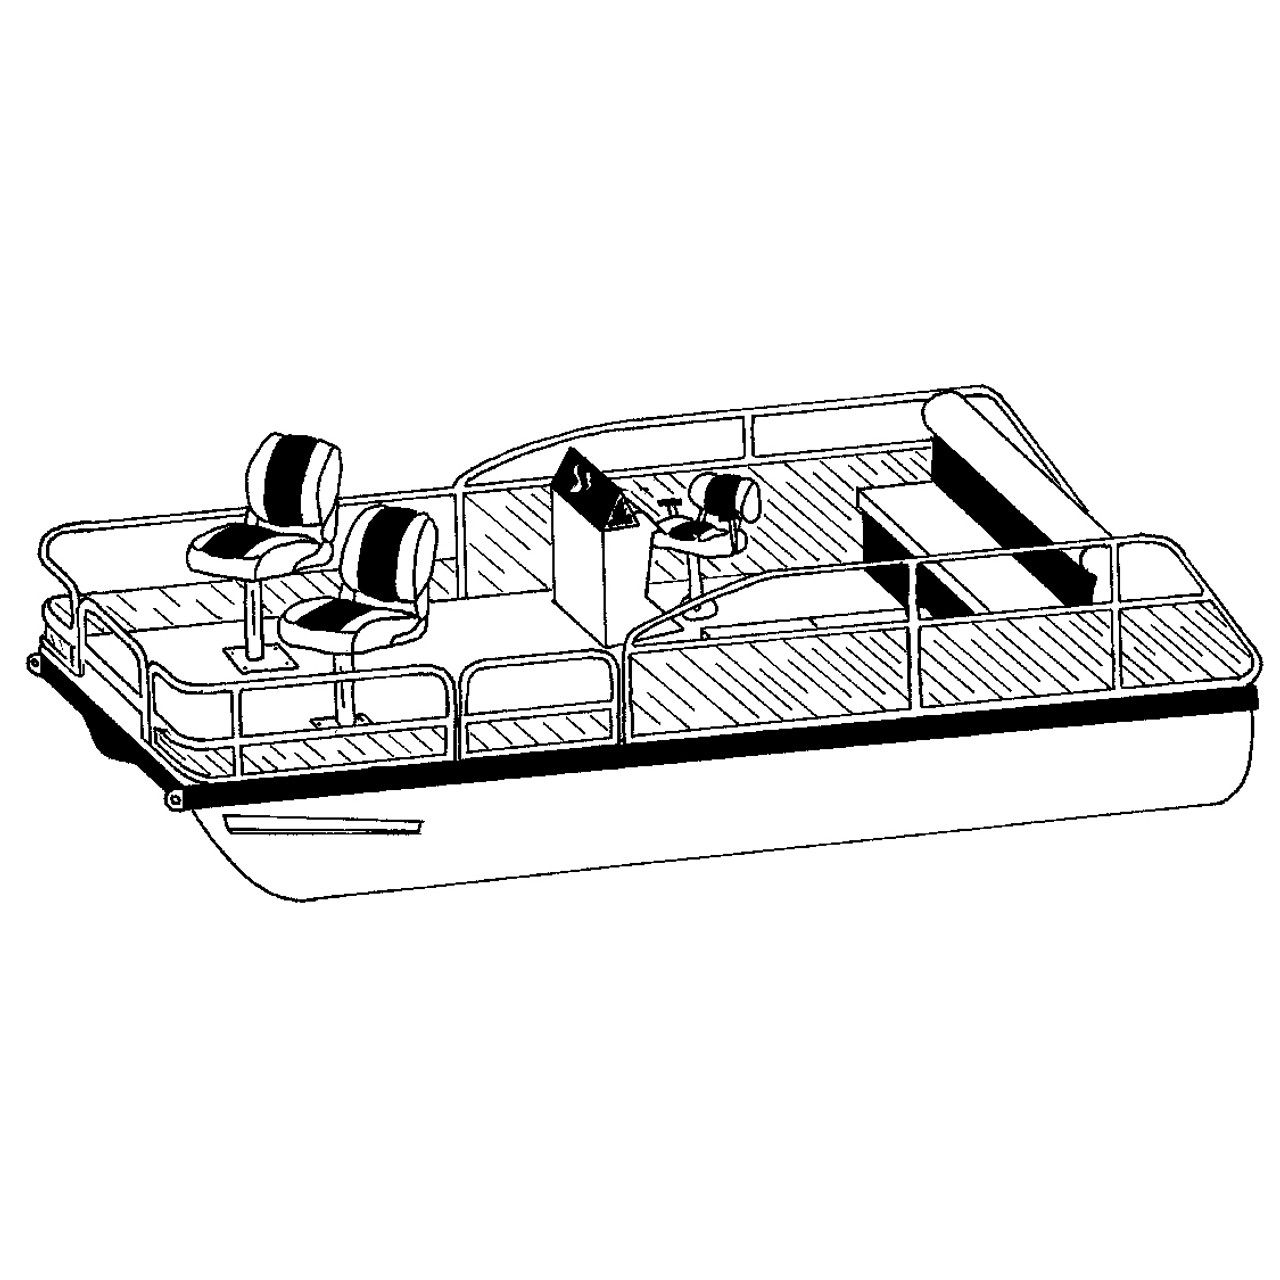 small resolution of cover fits pontoon with low rails or fishing chairs at aft end of deck